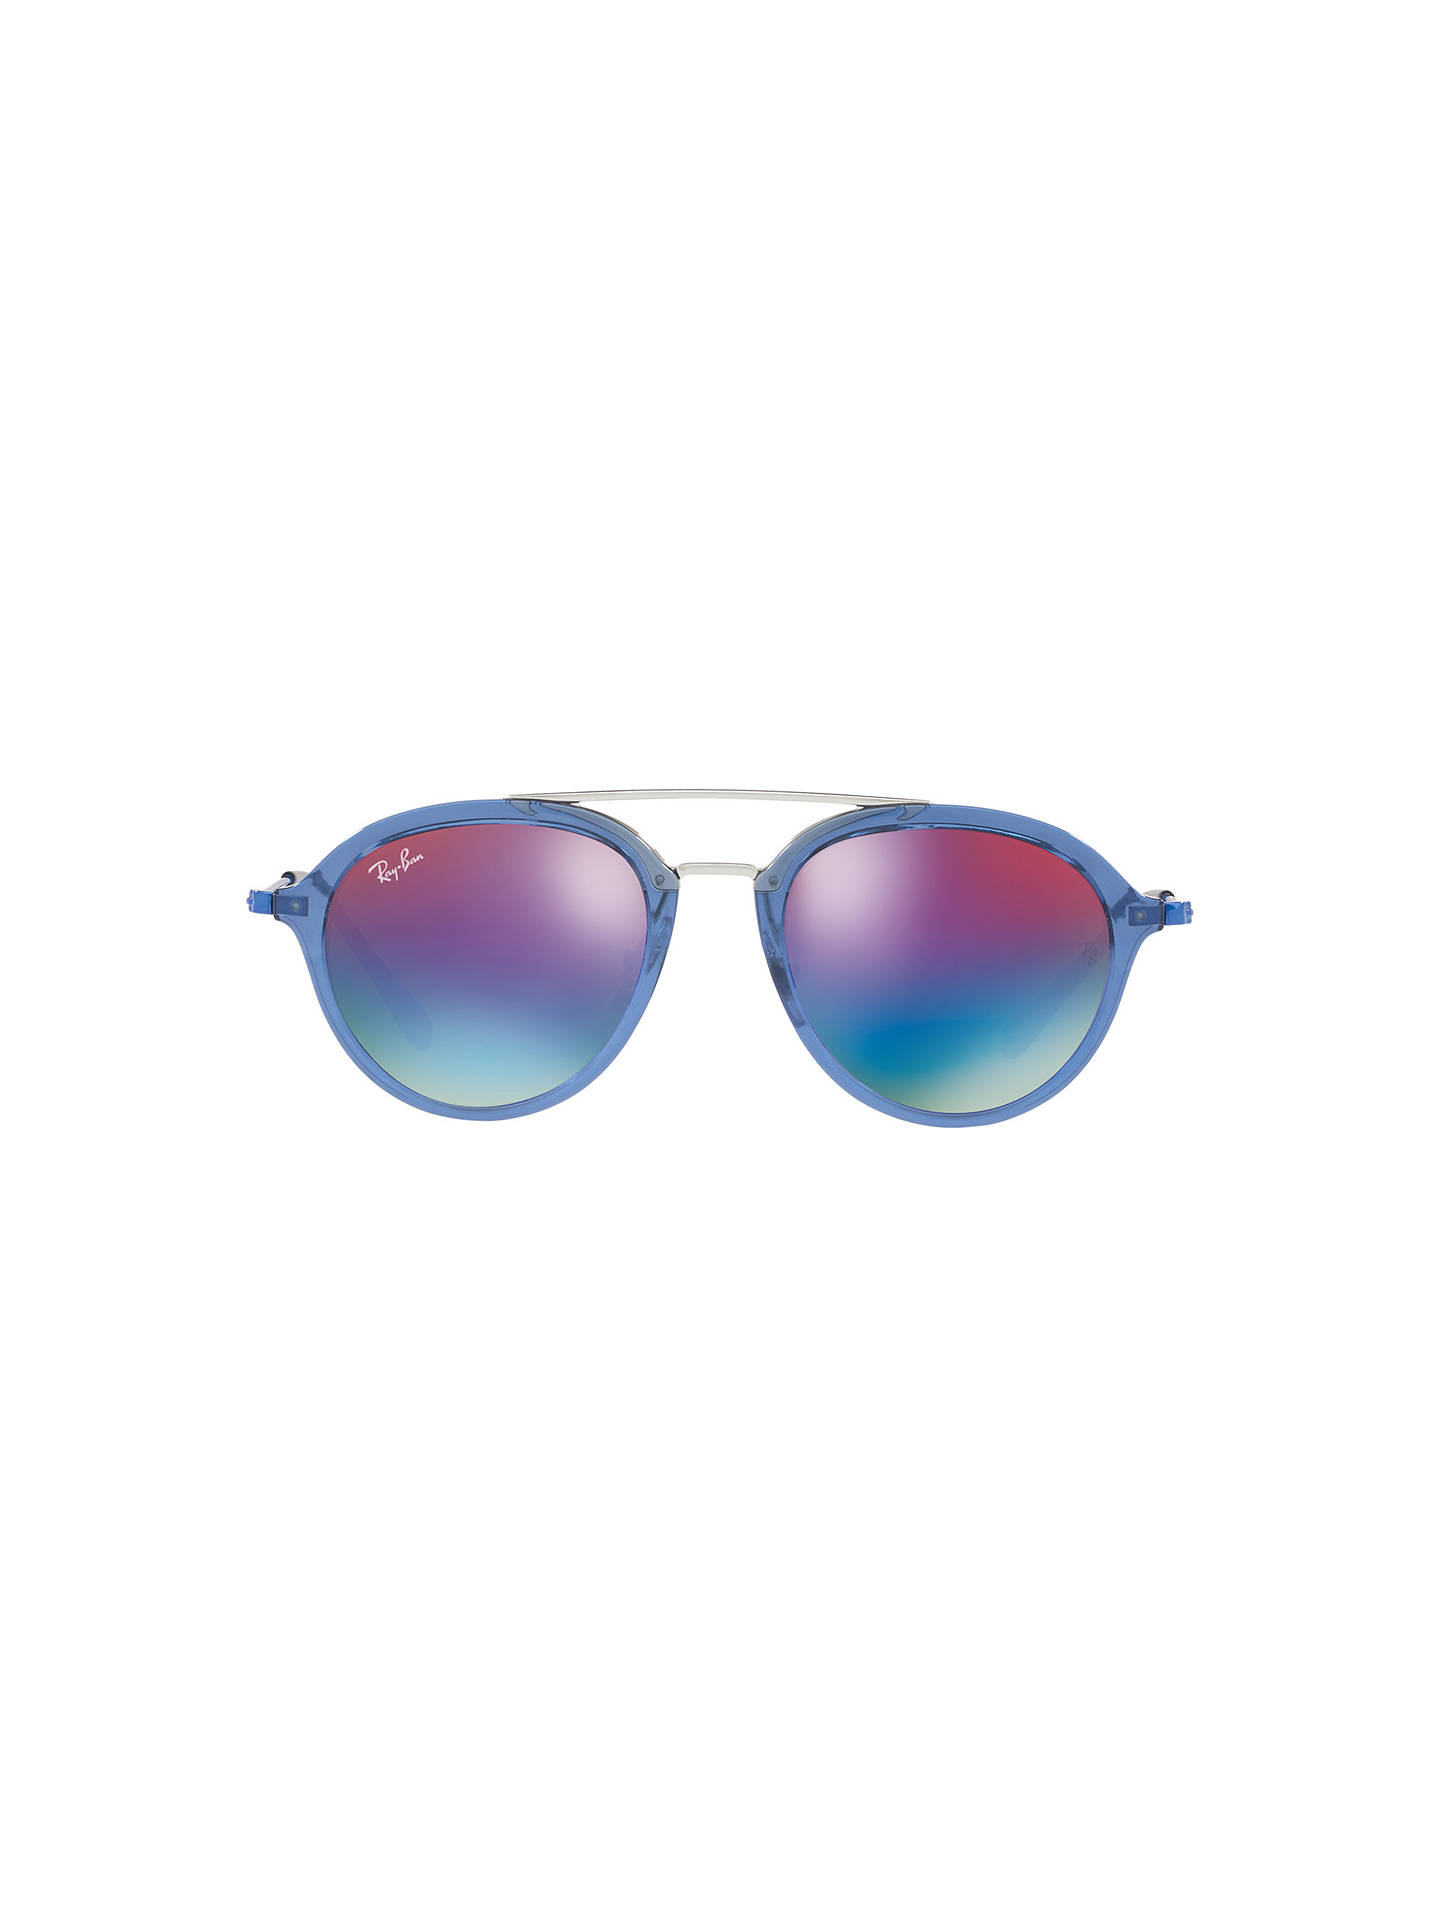 Buy Ray-Ban Junior RJ9065S Oval Sunglasses, Blue/Mirror Multi Online at johnlewis.com